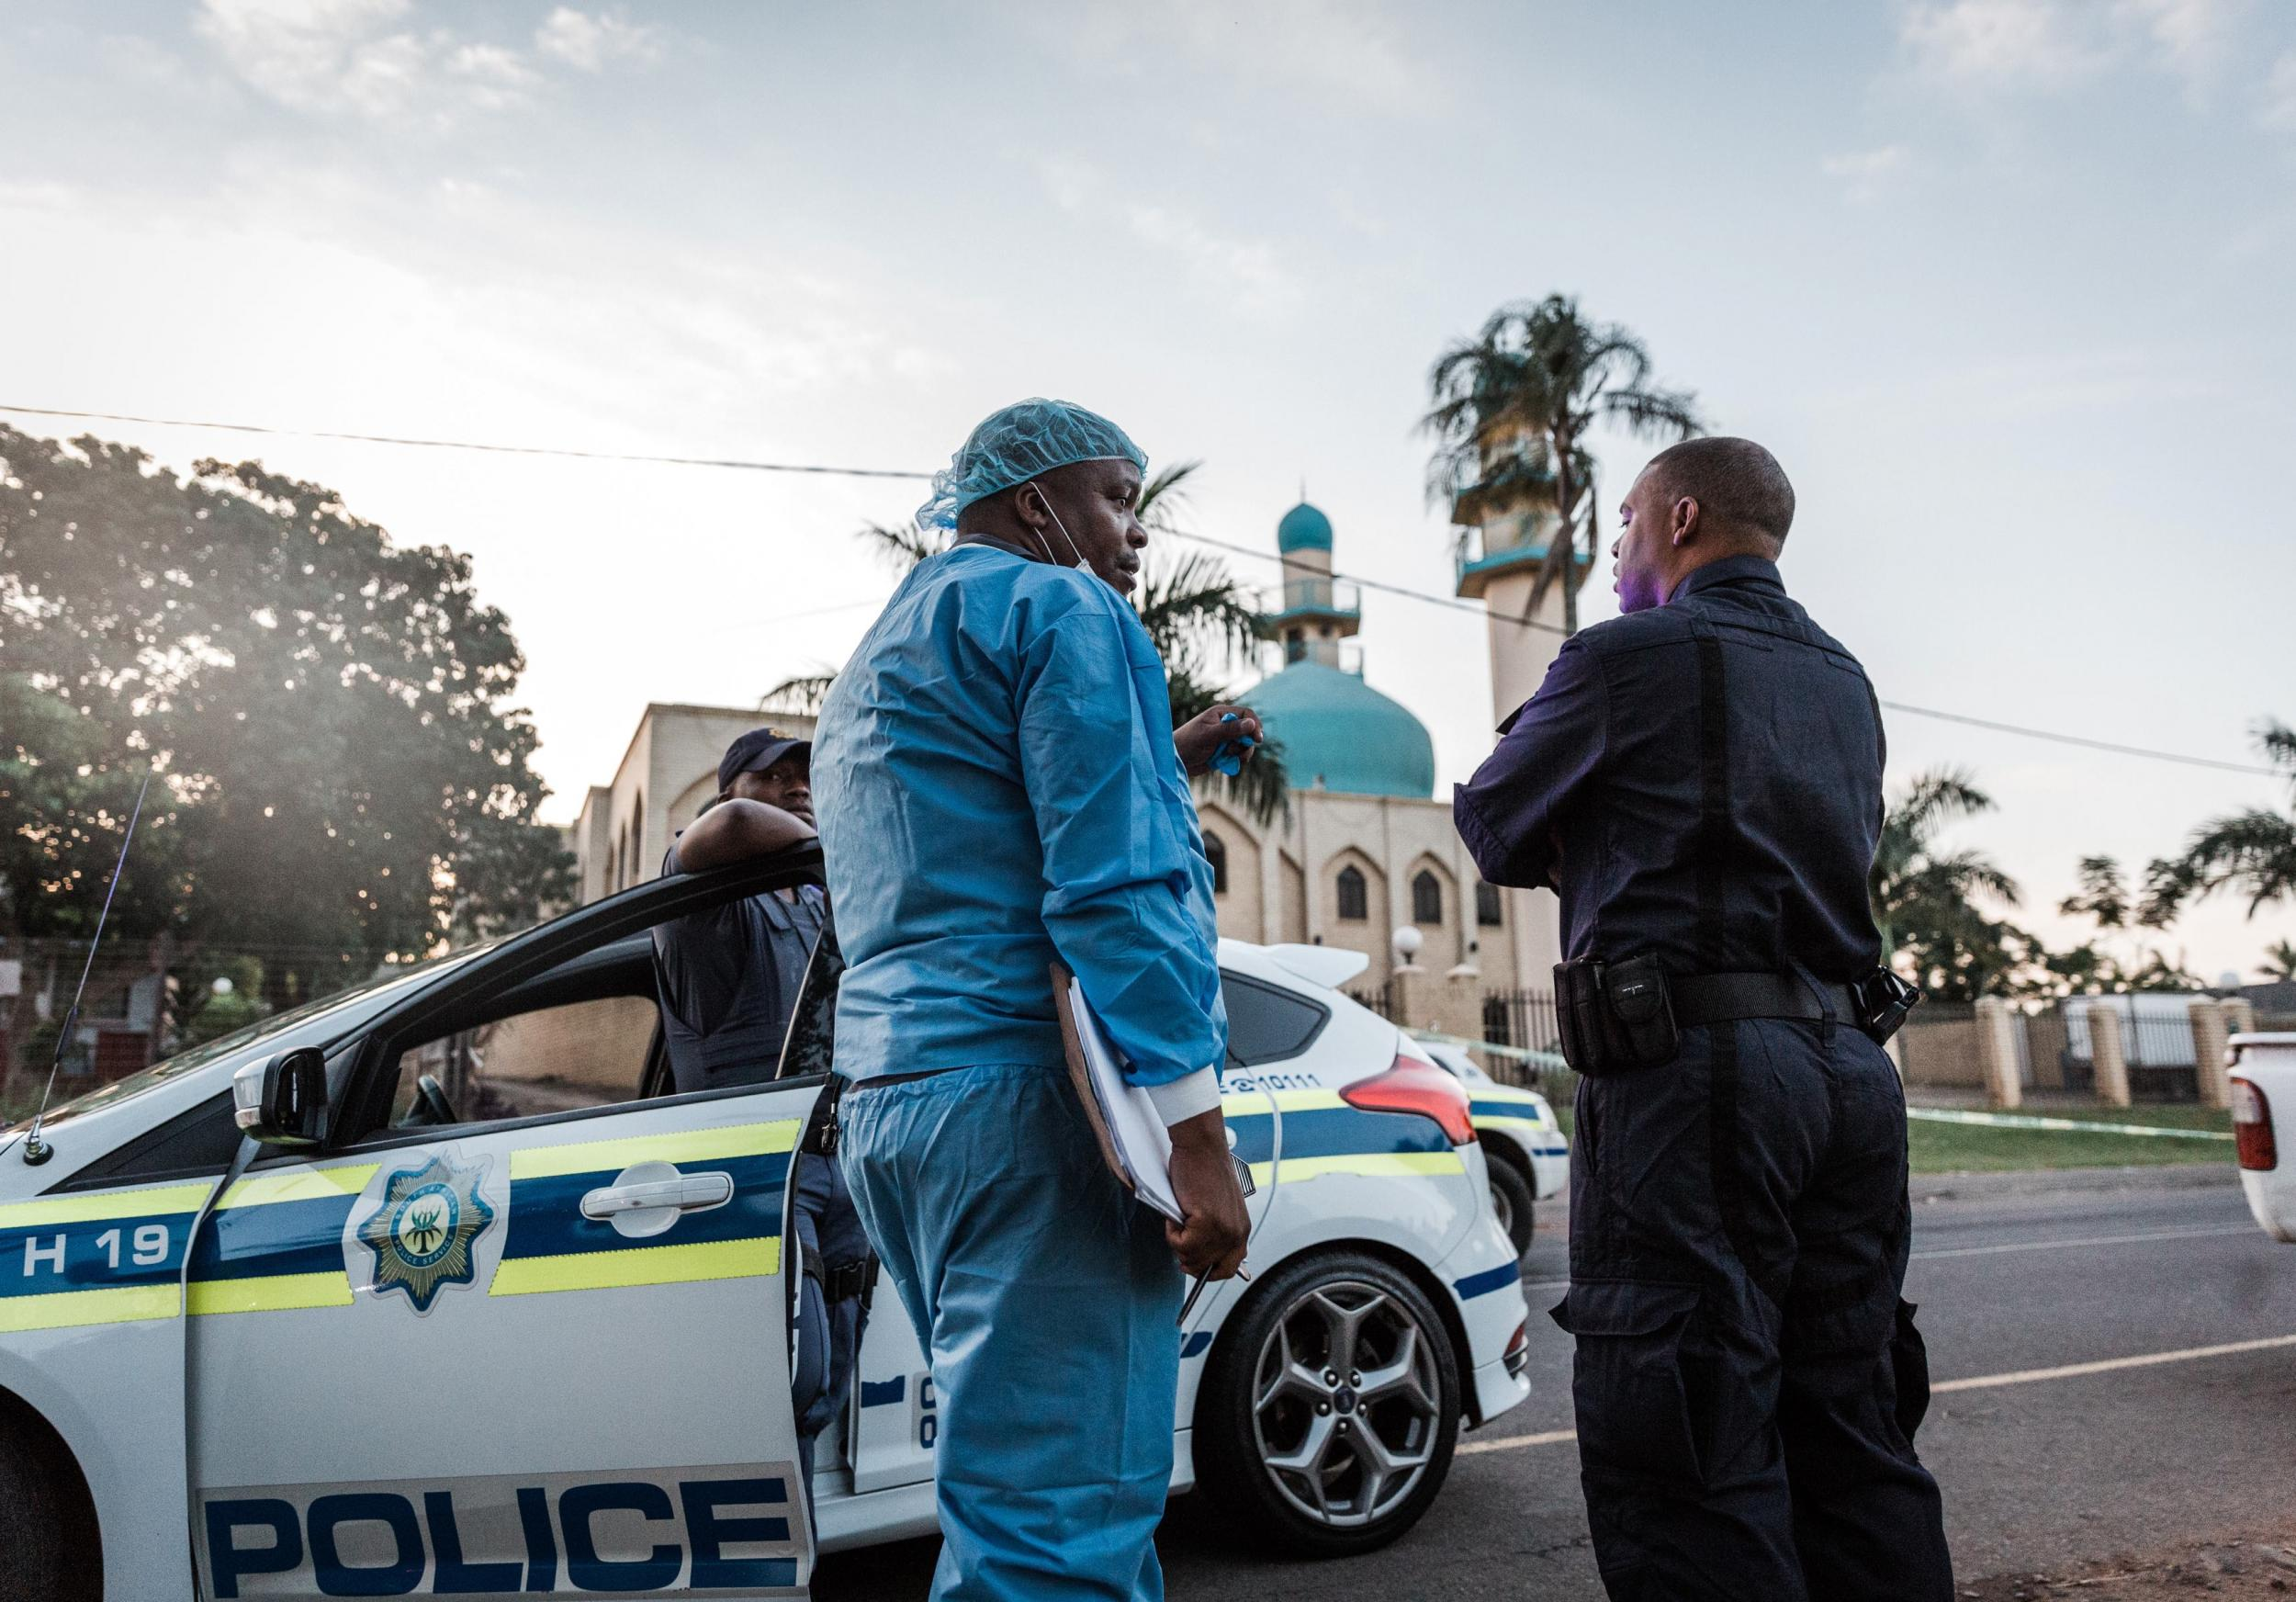 Two stabbed to death in 'brutal' attack on mosque in South Africa during morning prayers